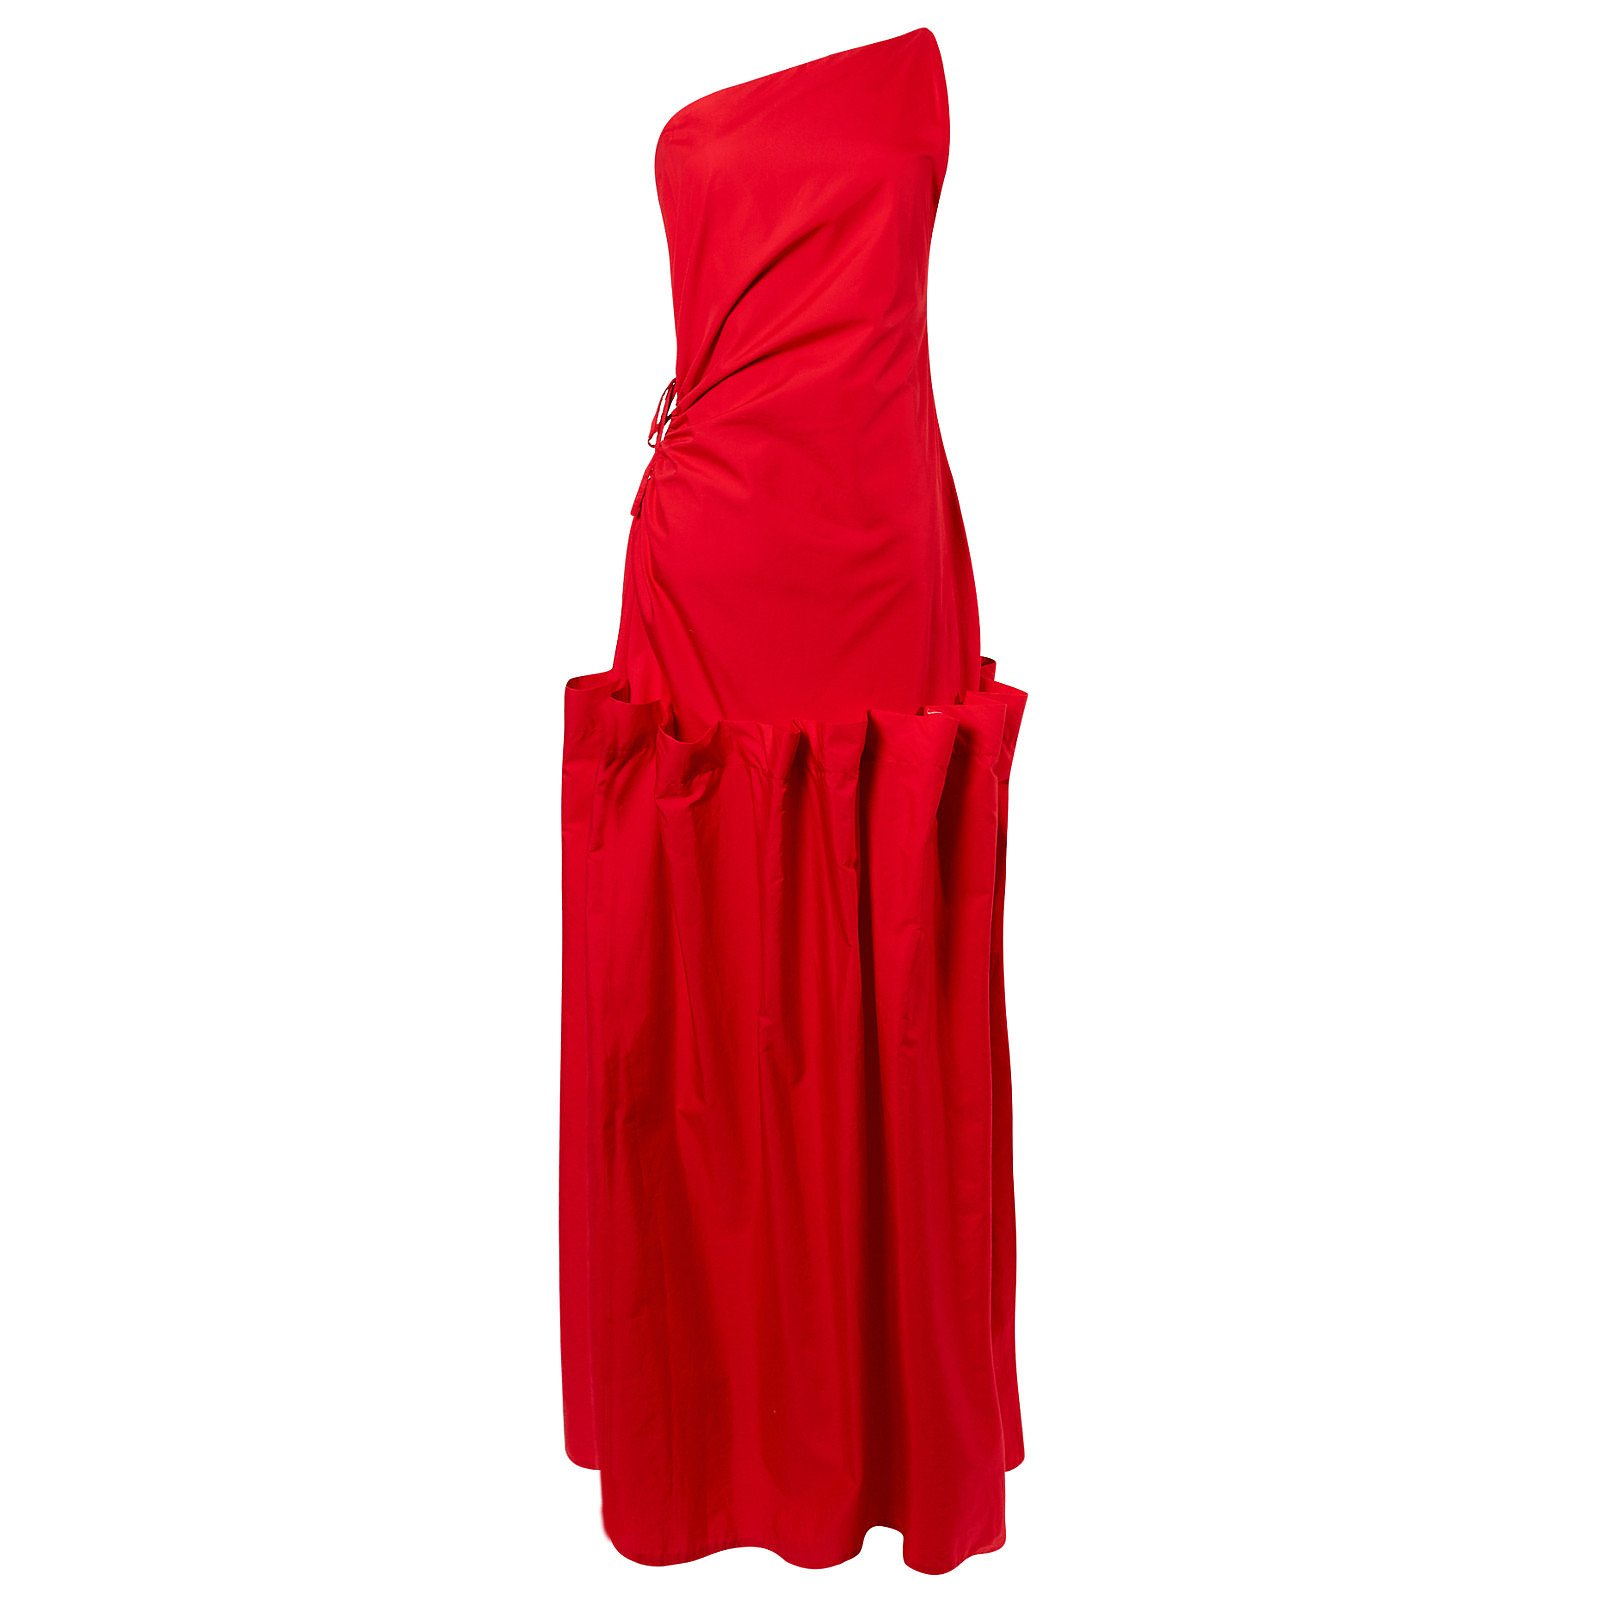 Maison Bent Single Strapped Gown